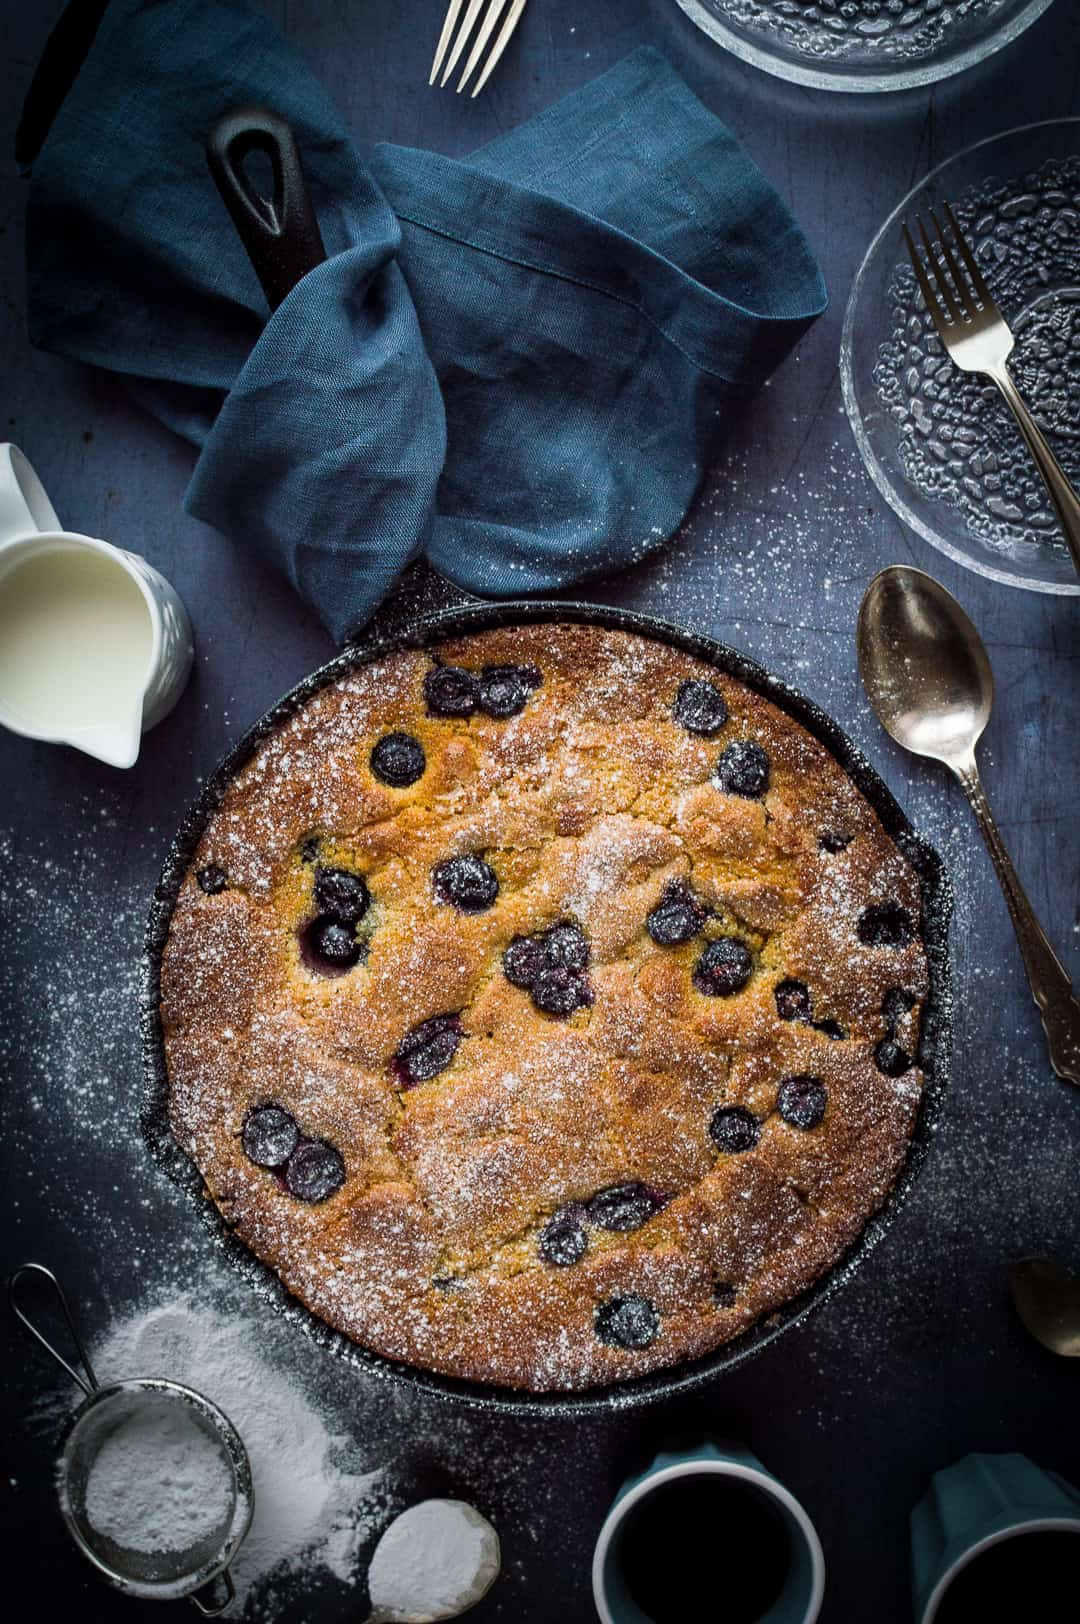 Blueberry cornmeal cake cooked in a cast iron skillet on a dark background.